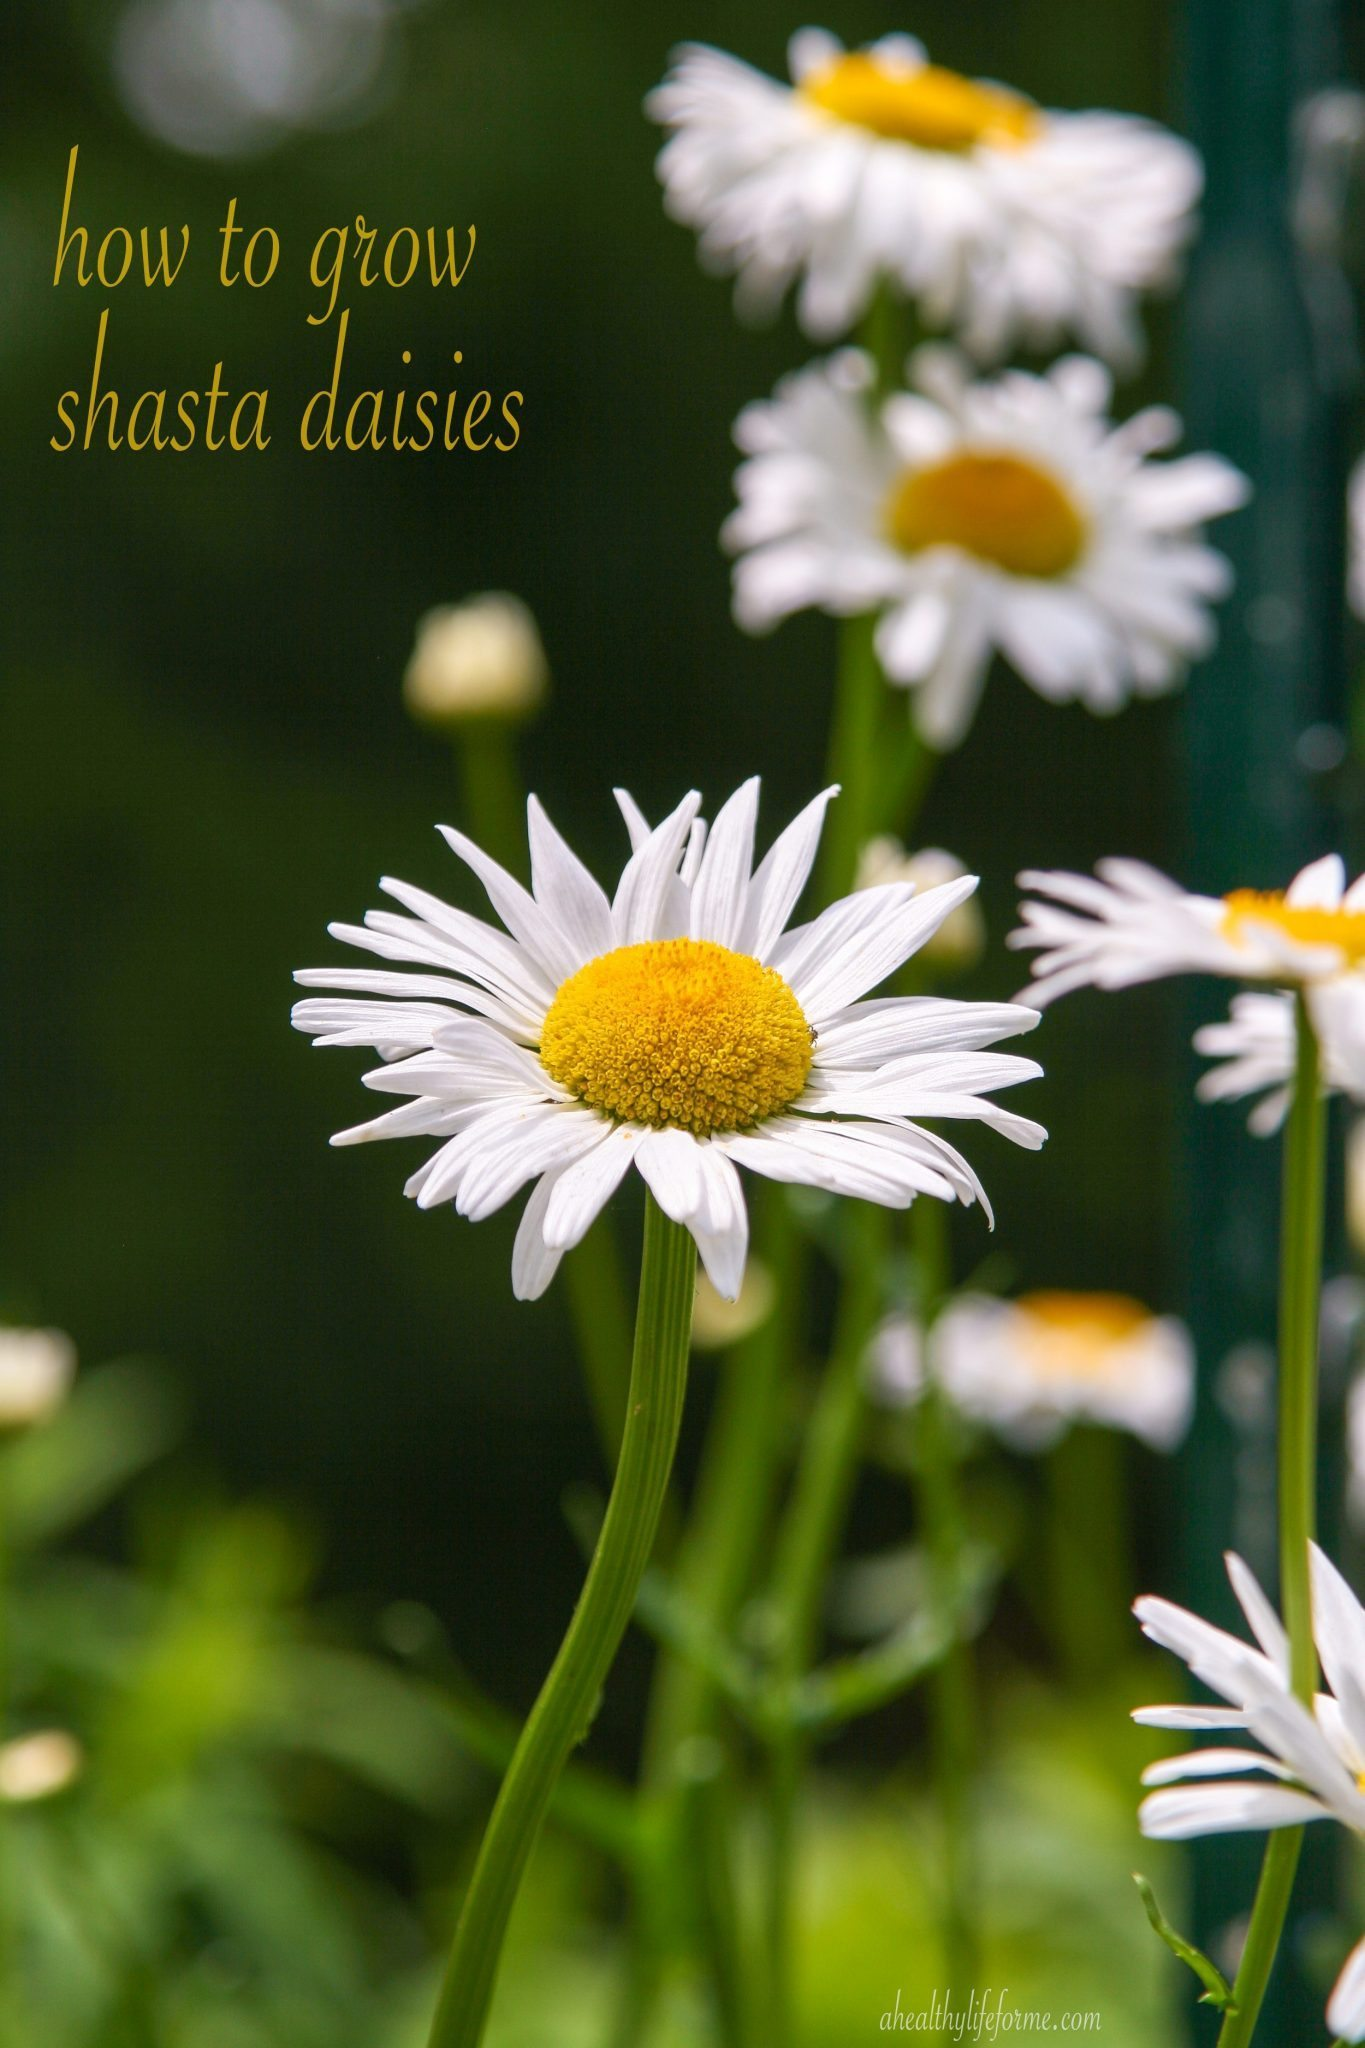 How To Grow Shasta Daisy A Healthy Life For Me